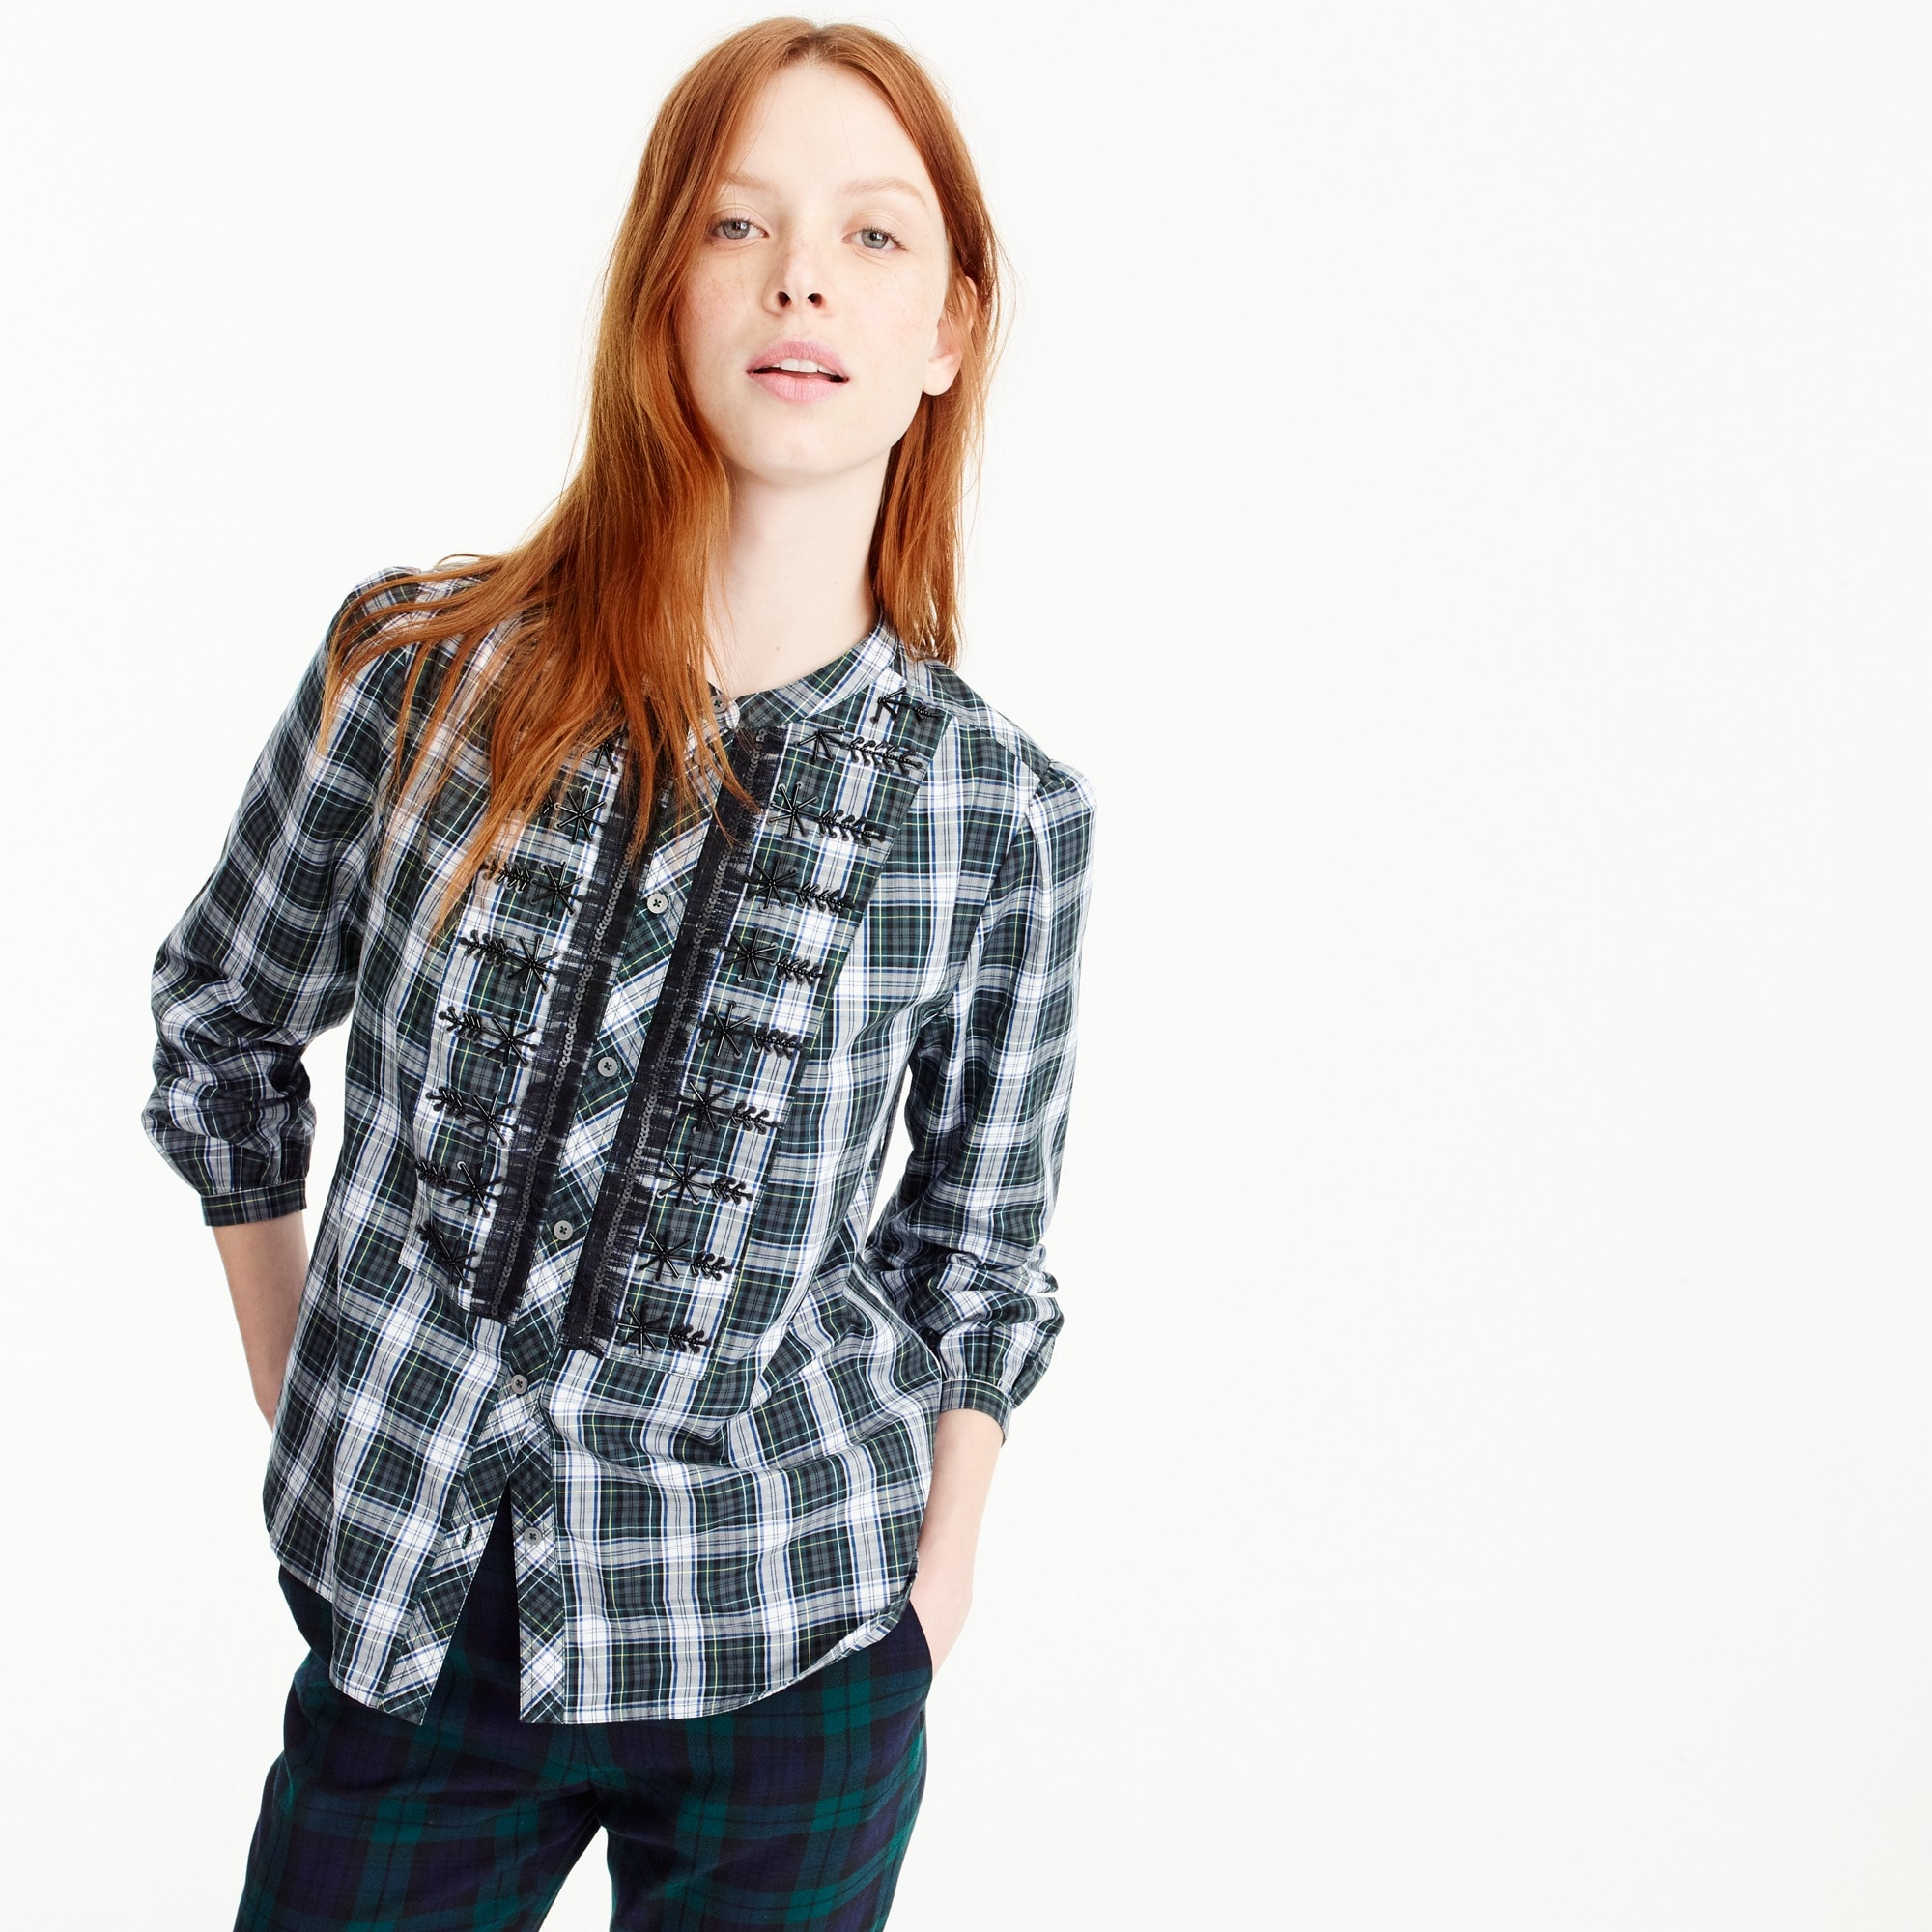 Image 1 for Petite embellished button-up shirt in forest tartan